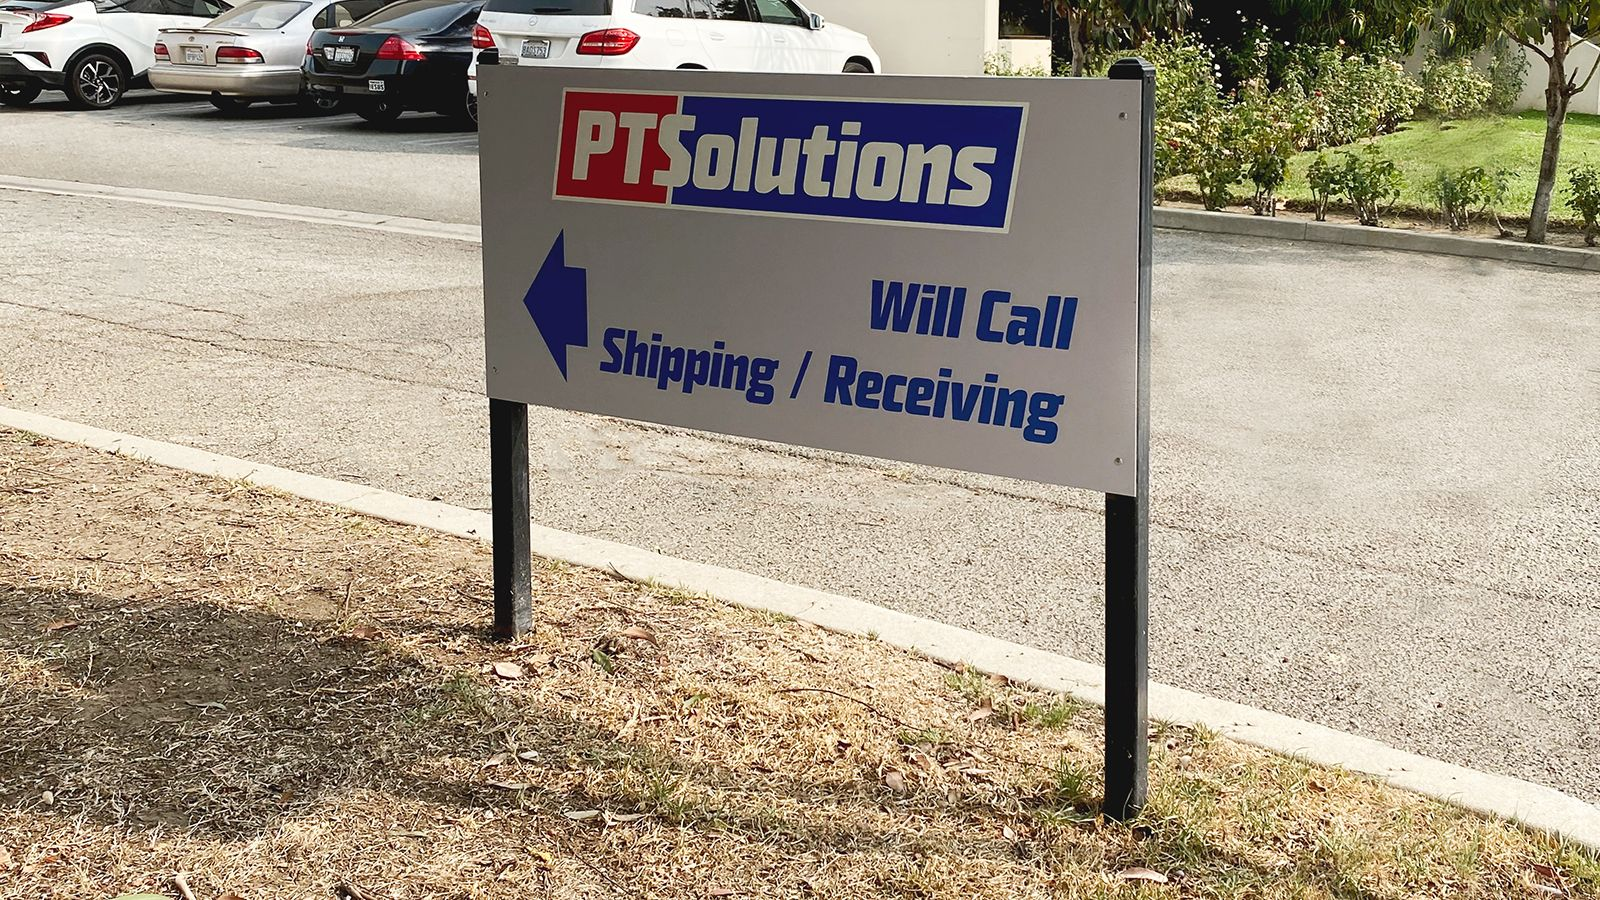 PT Solutions yard sign